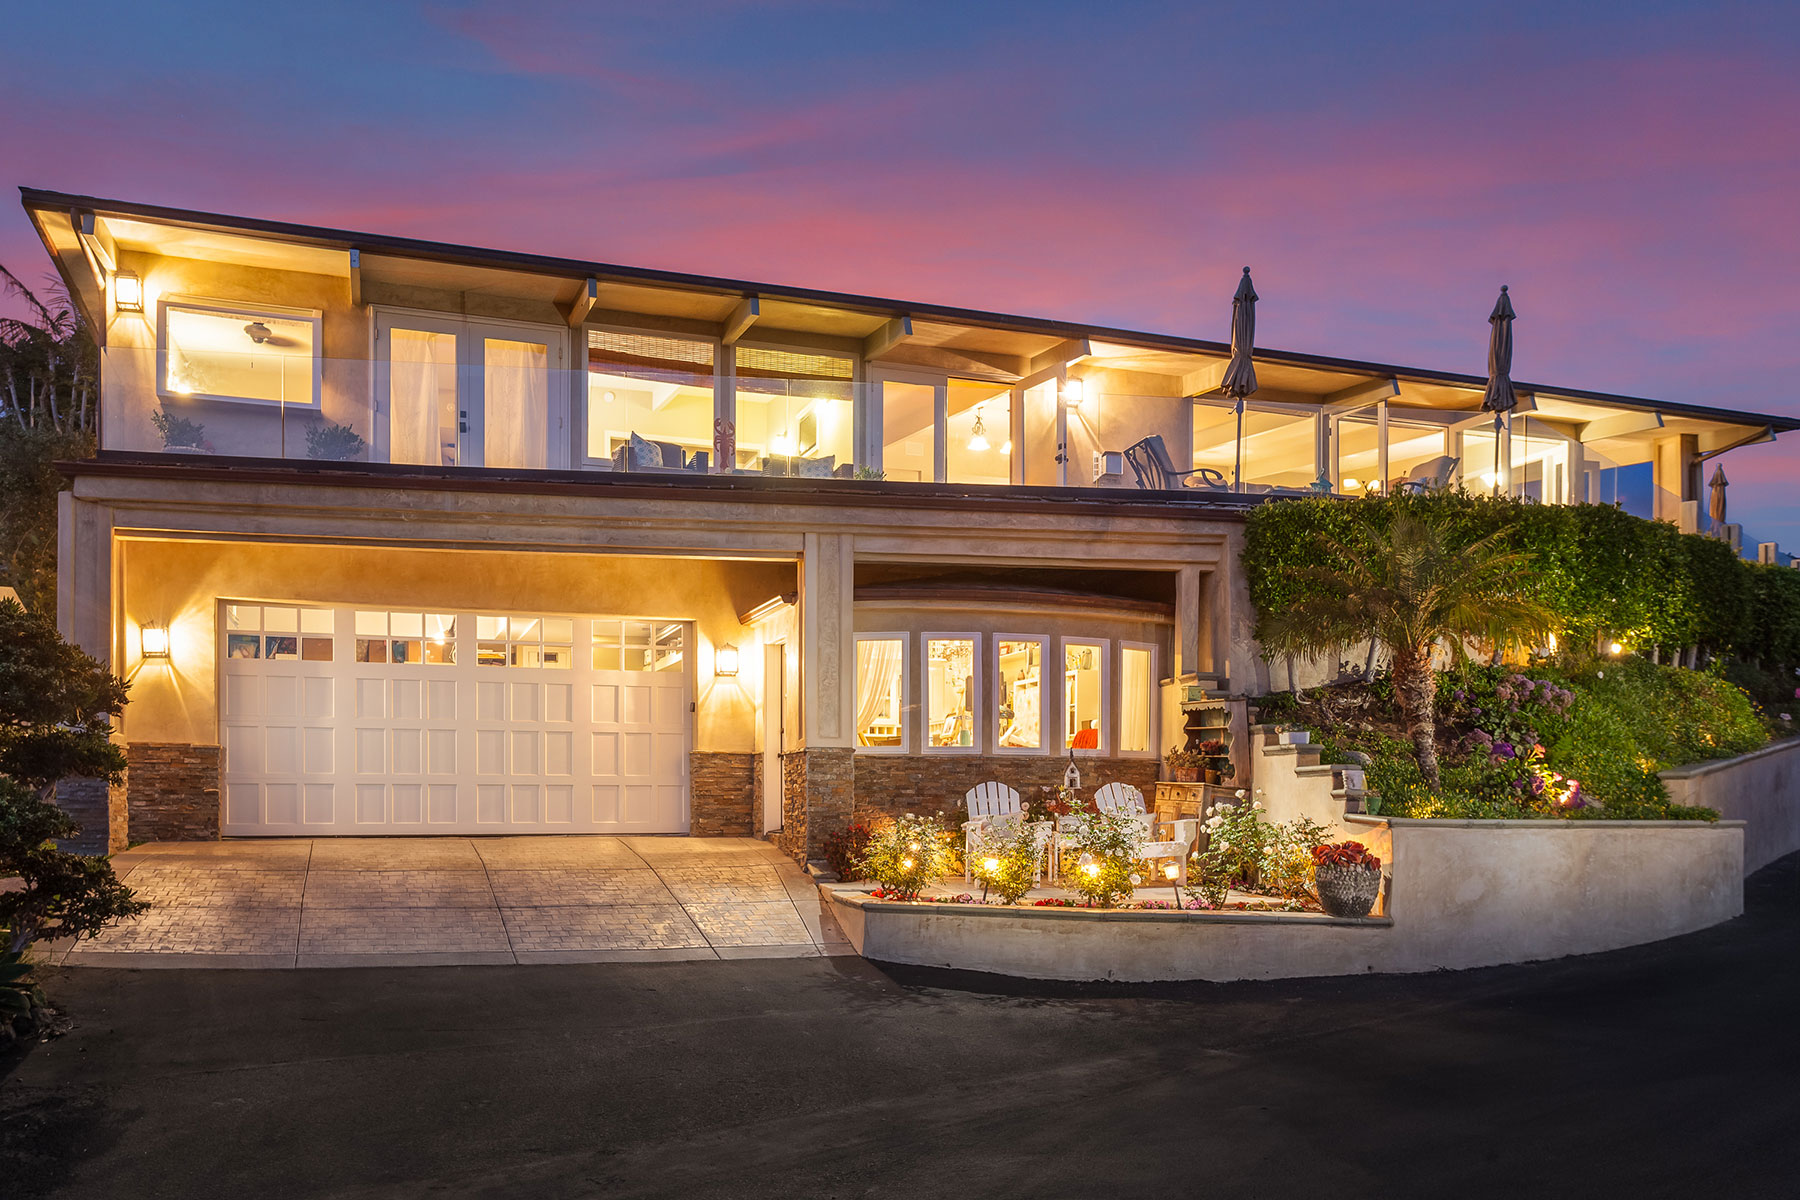 Single Family Home for Sale at 4 Lagunita Laguna Beach, California, 92651 United States